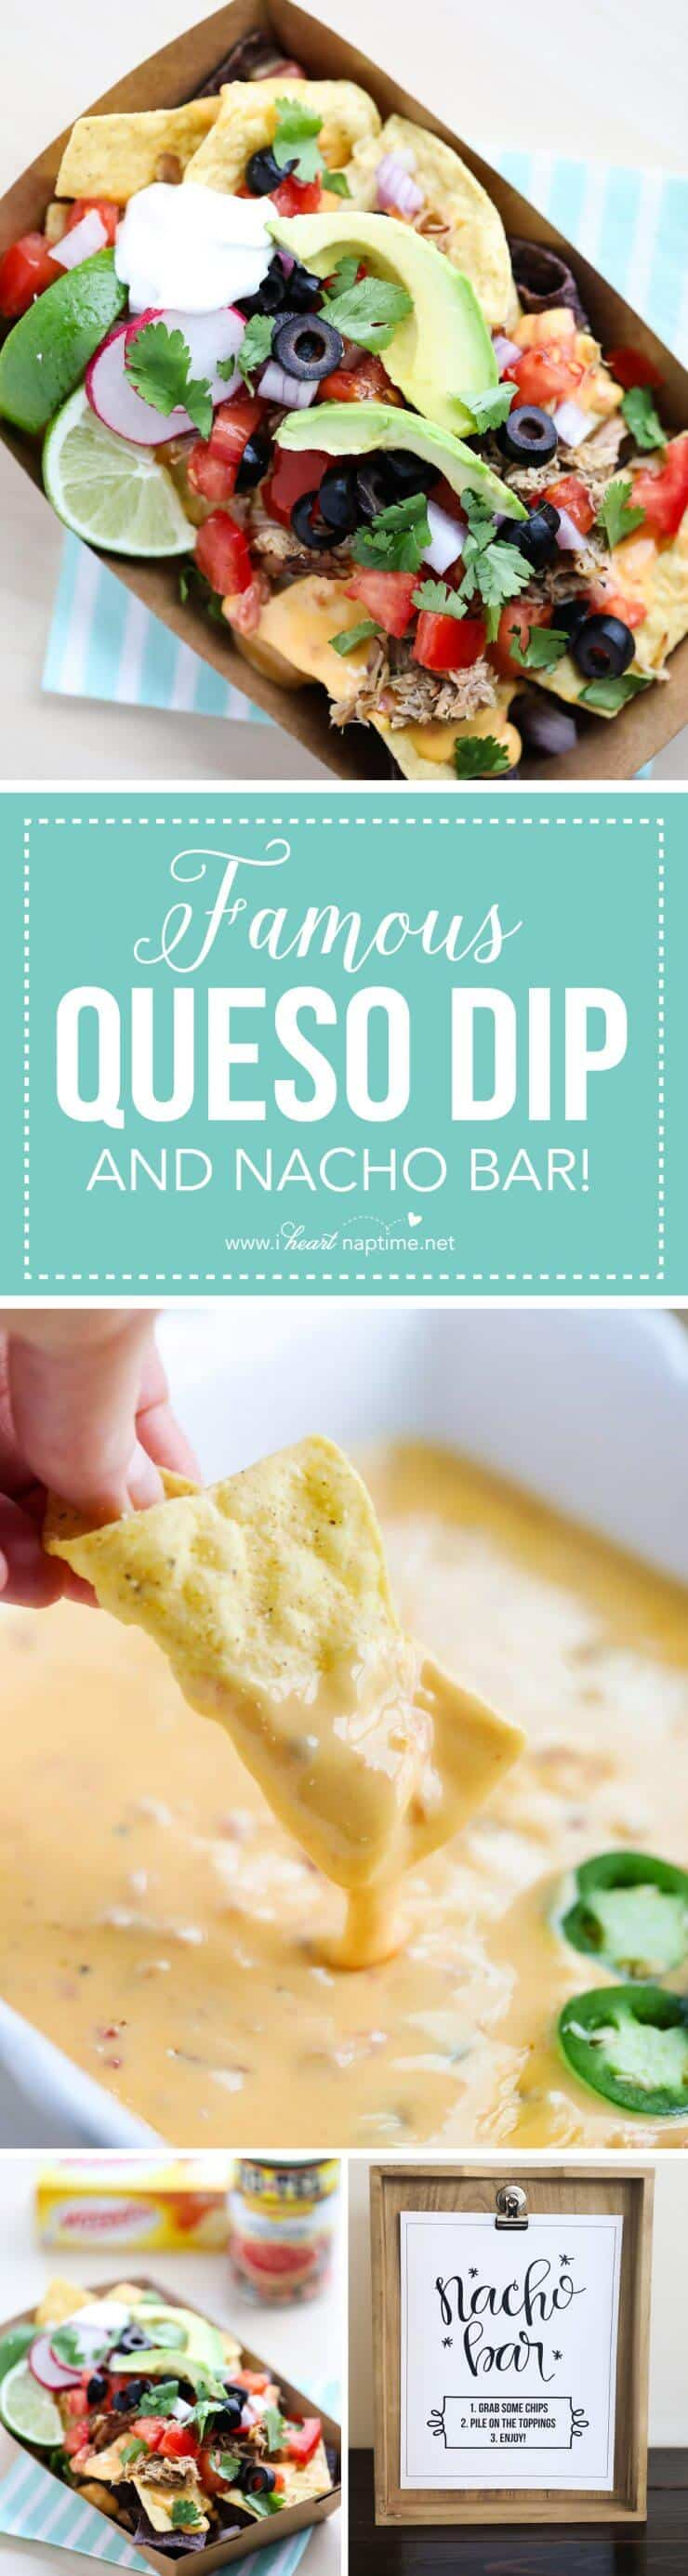 Nacho Bar free printables + Famous Queso Dip Recipe and all the fix-in's! The perfect game day appetizer.